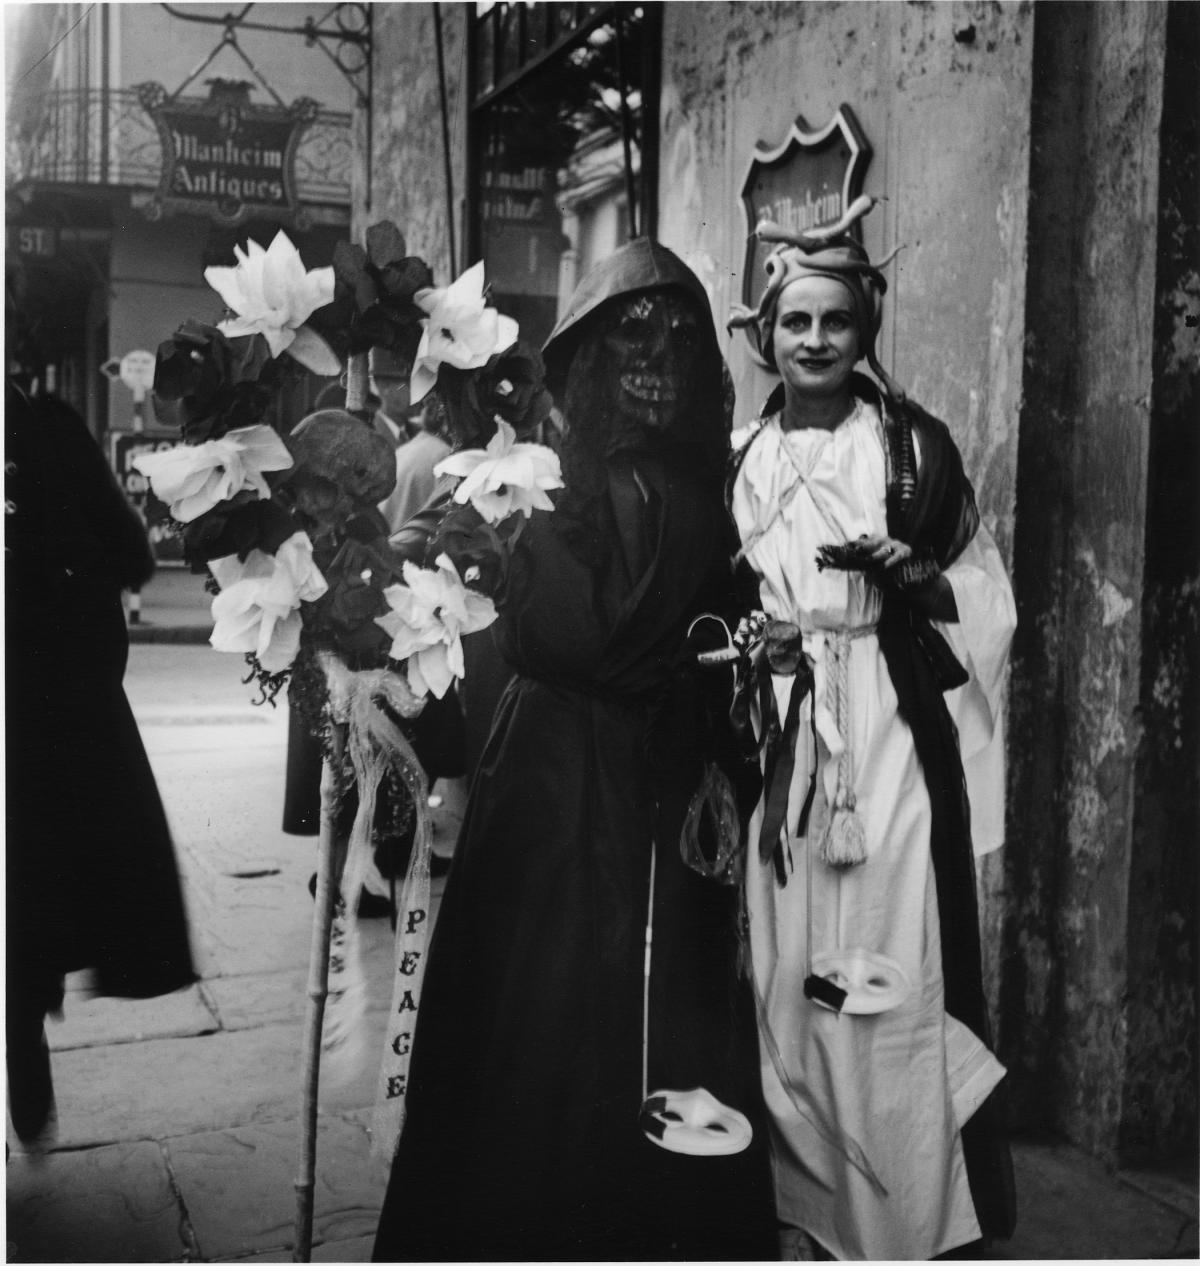 Two revelers stand on a New Orleans street; one wearing a long white robe and snake-topped cap, the other in a hooded black robe, black skull mask, and holding a wreath of black and white flowers